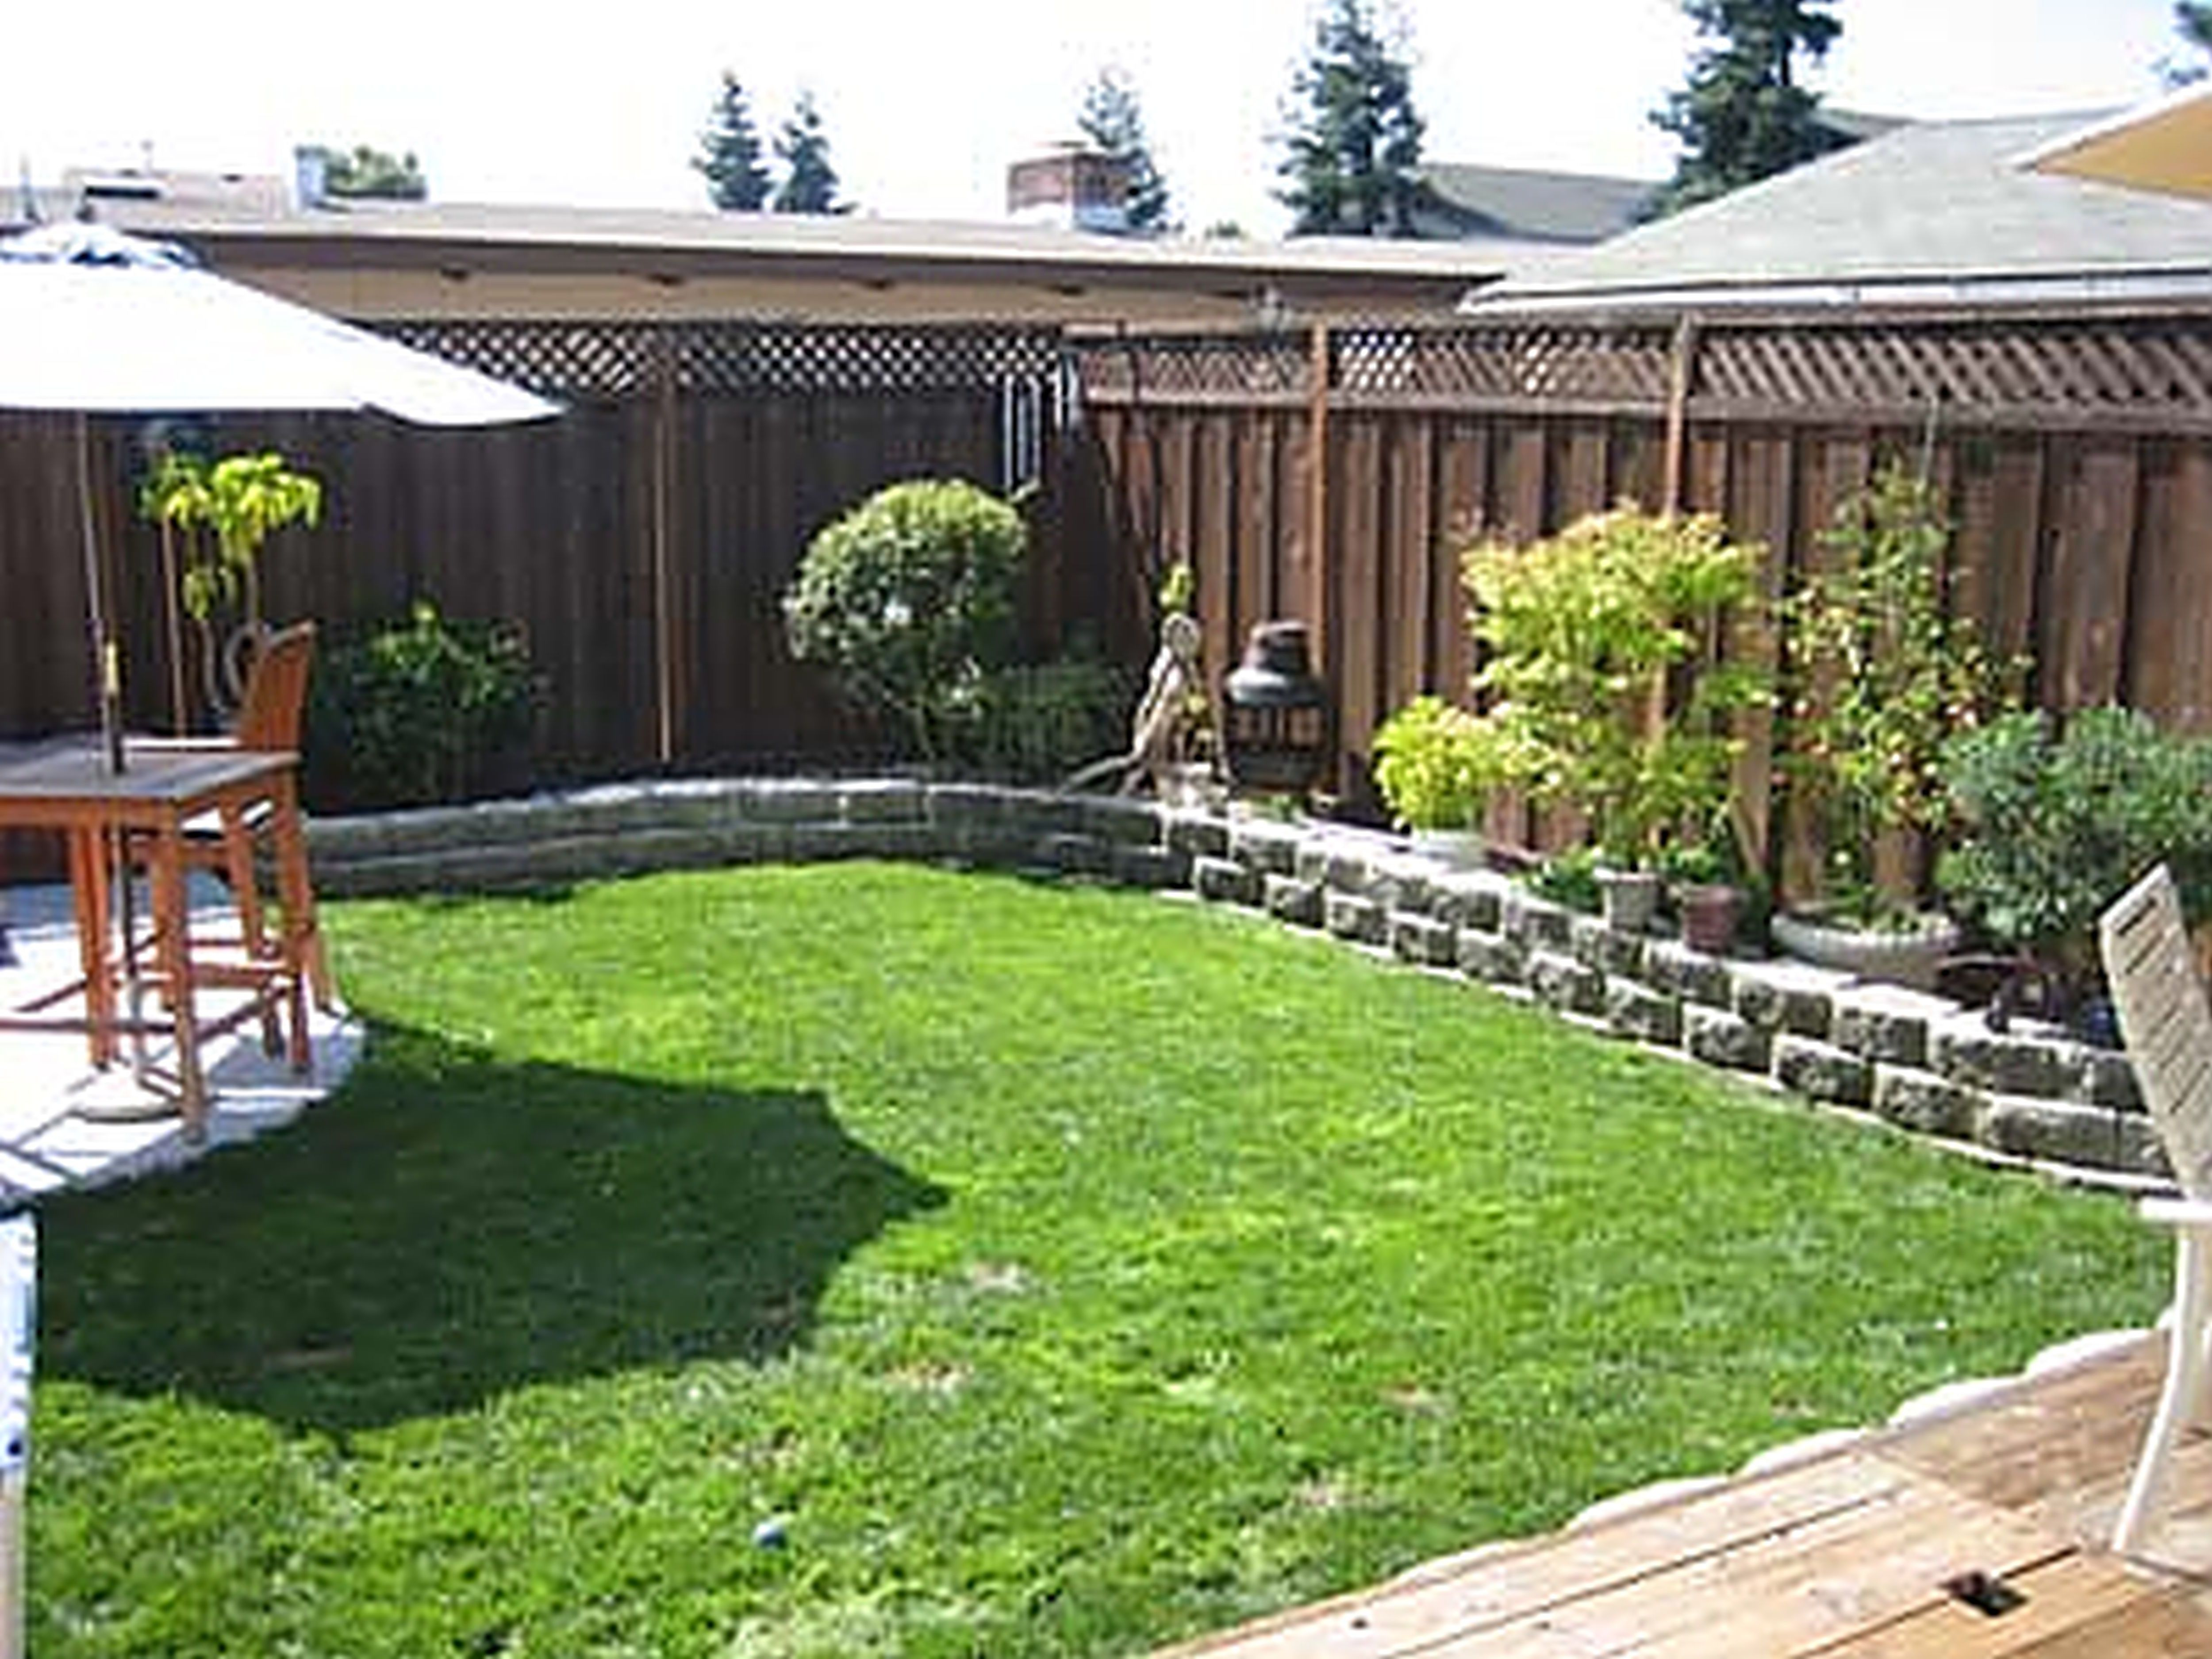 Yard Landscaping Ideas On A Budget Small Backyard ... on Small Backyard Patio Ideas On A Budget id=12835